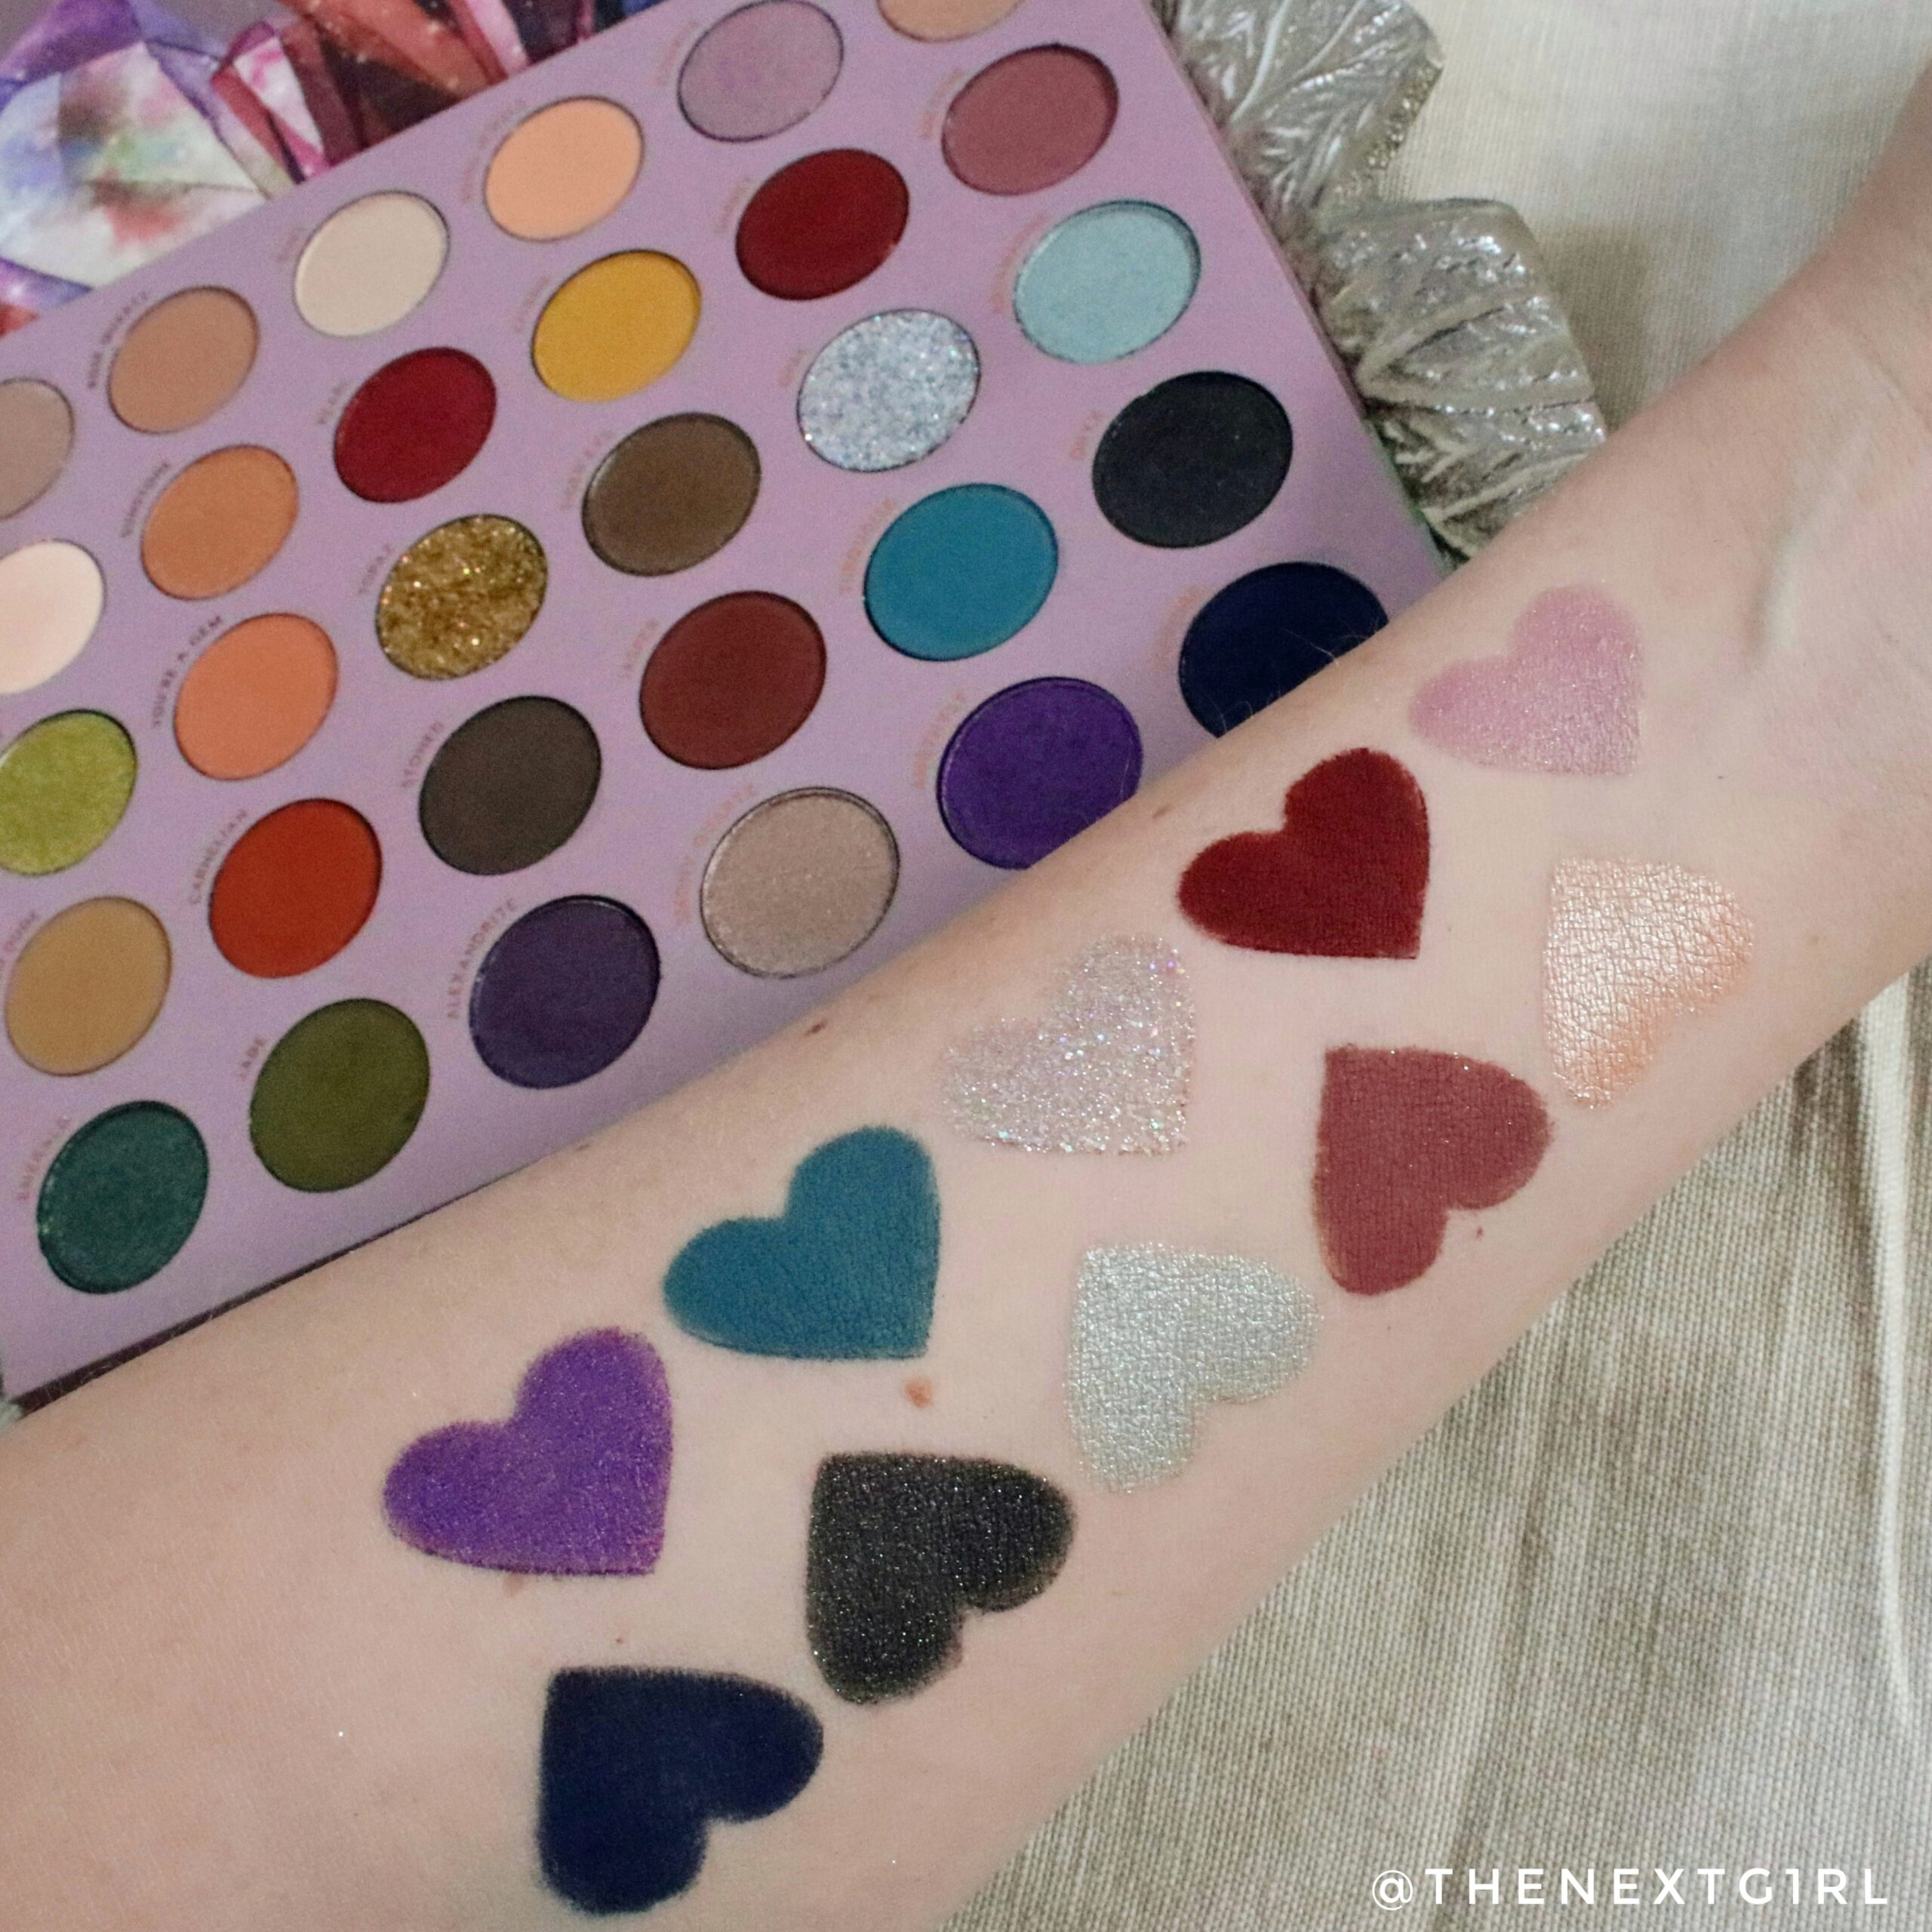 Swatches 2 Colourpop So Jaded palette